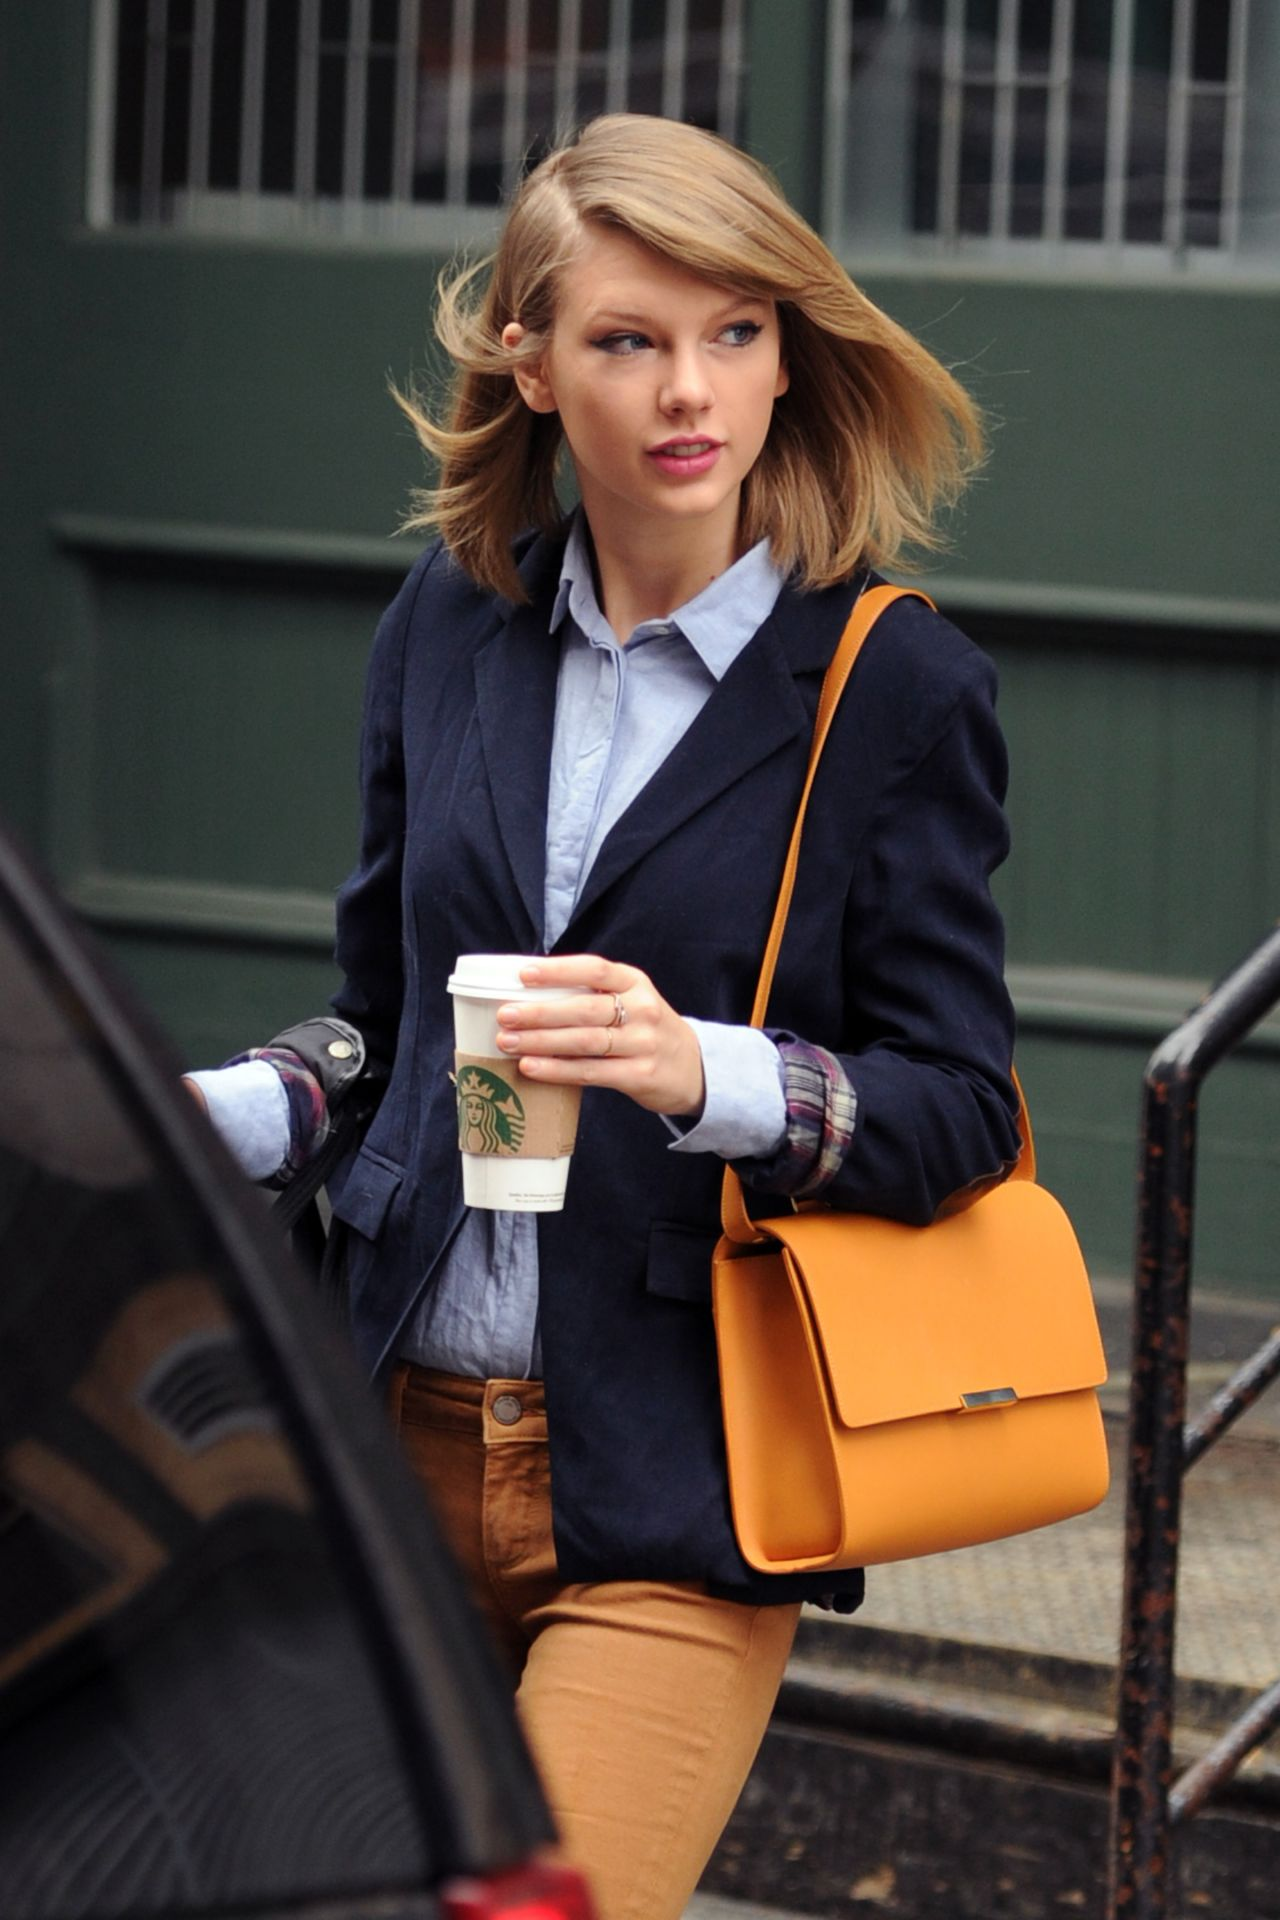 Tylor Swift Casual Dress Ups With Camel Brown Pent And Sky-Blue Shirt